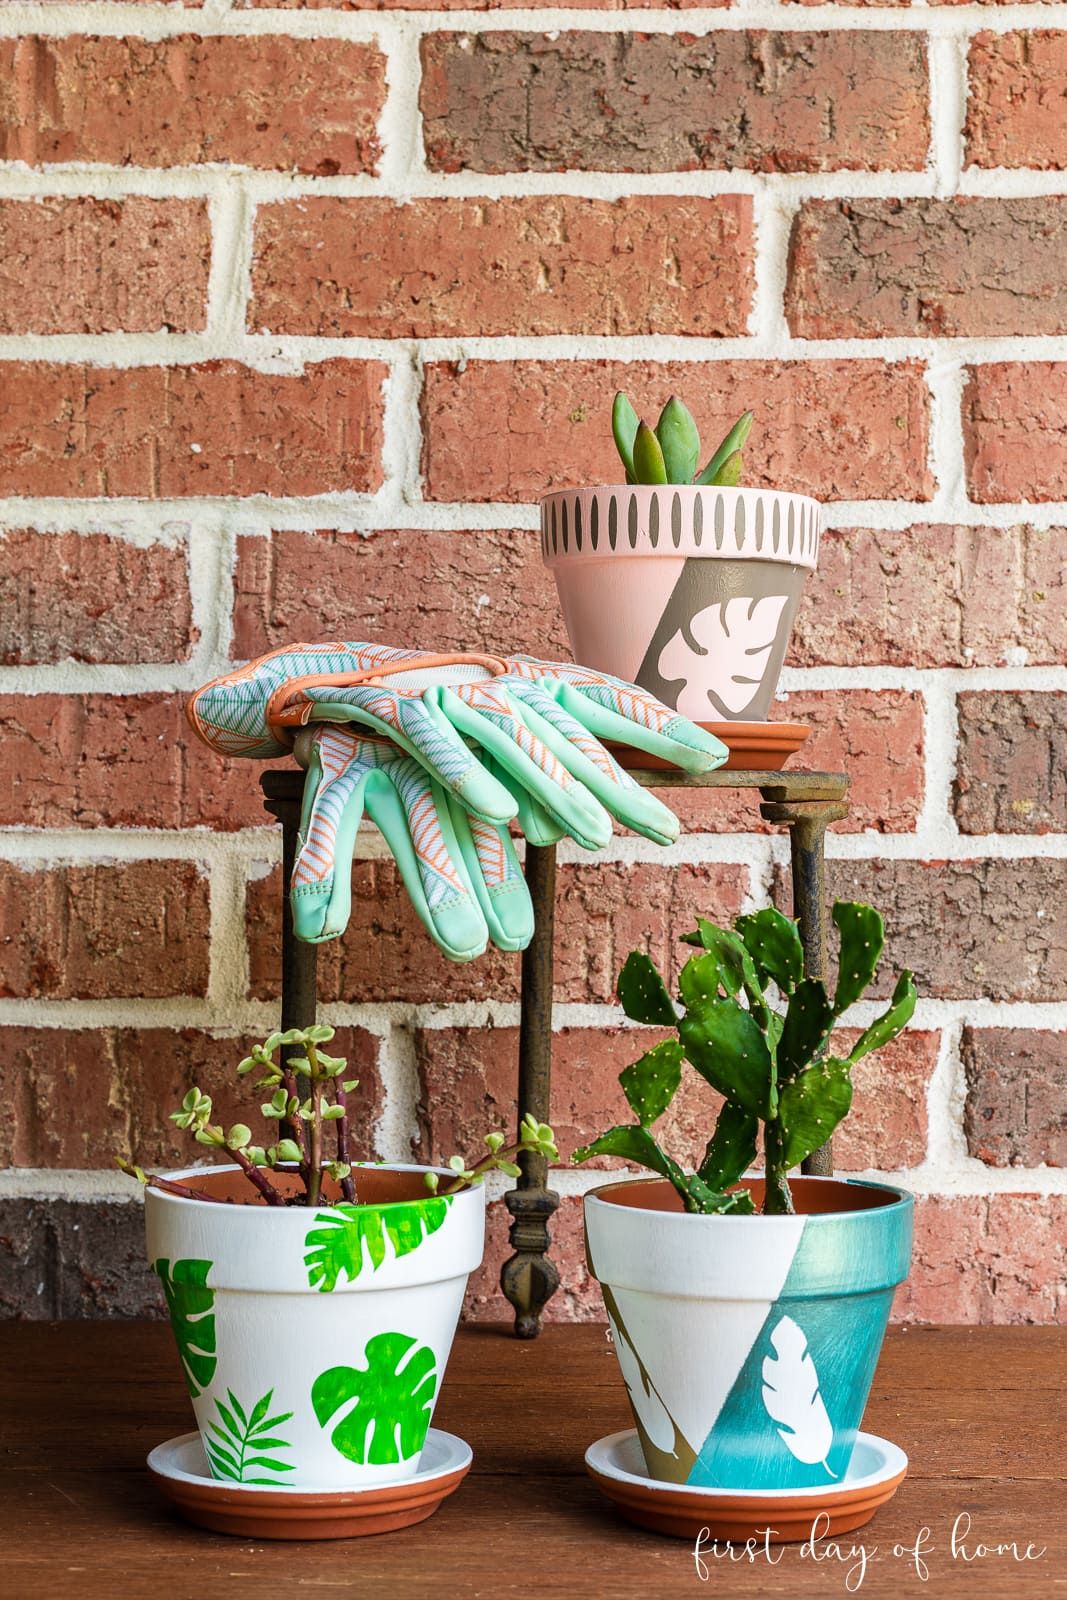 Three flower pots painted with stencil designs, pictured with gardening gloves